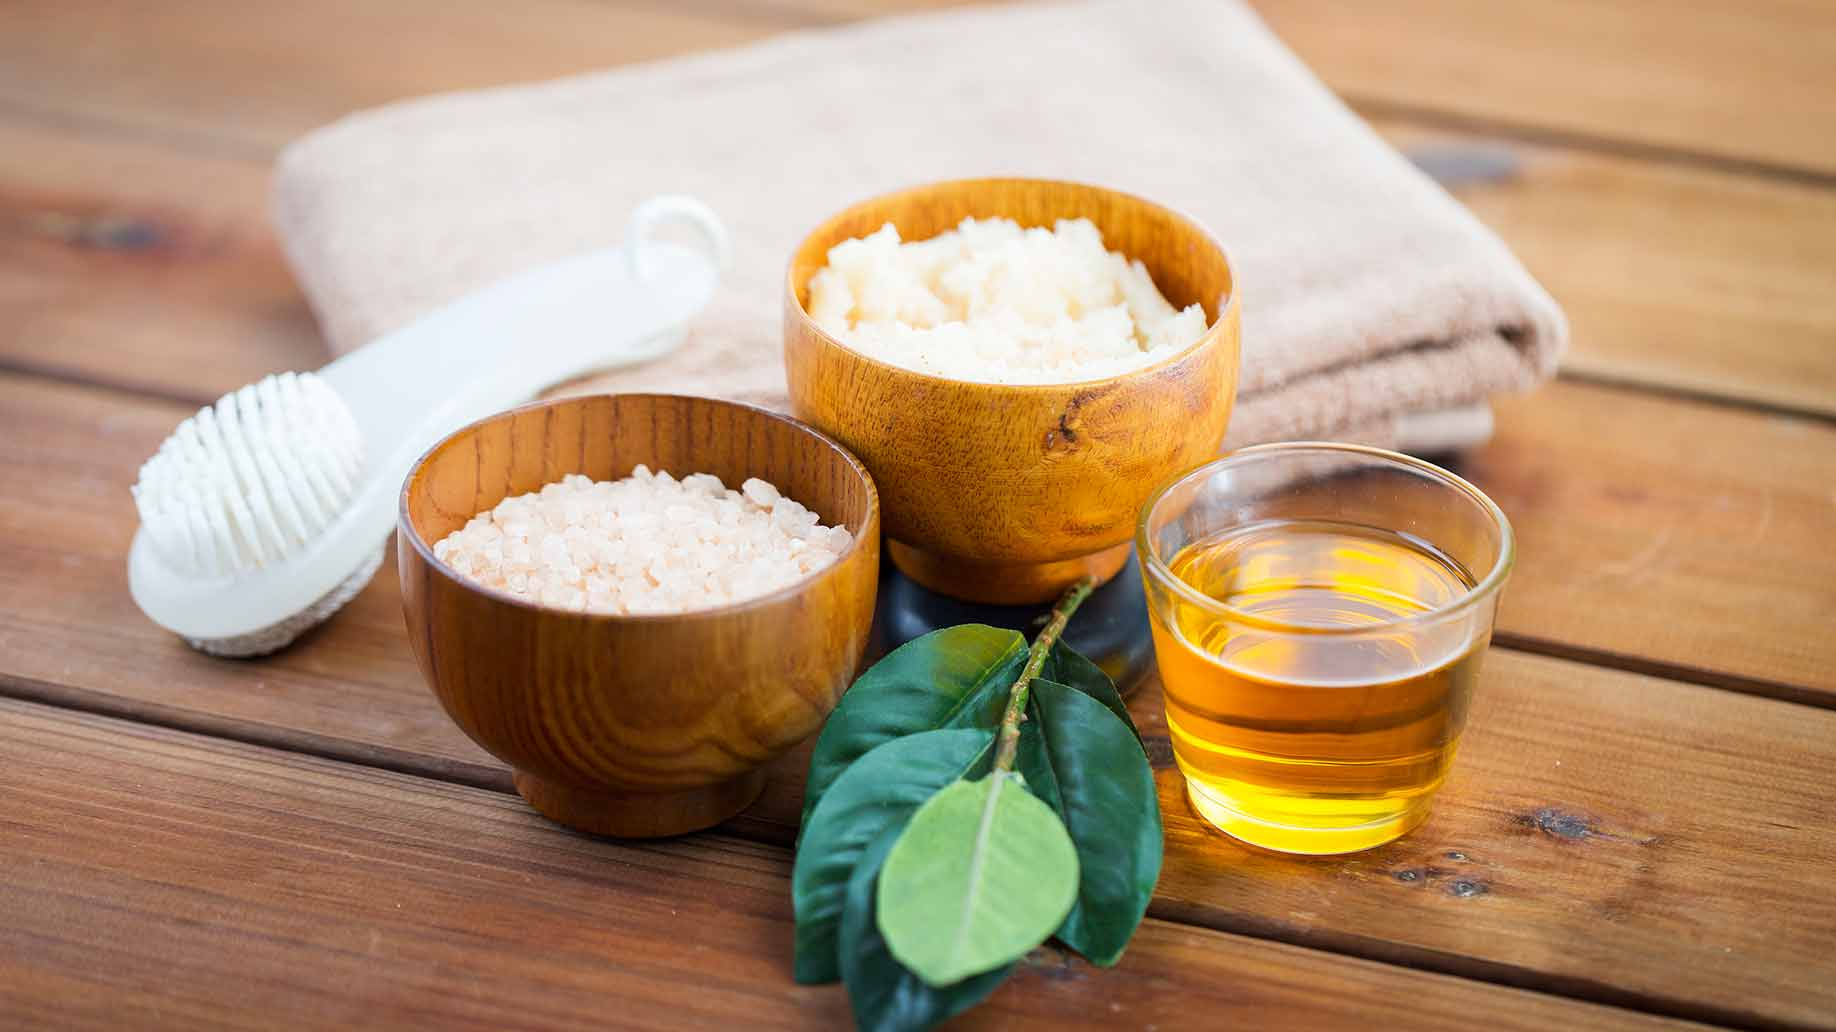 What If I Mix Epsom Salt and Baking Soda for a Bath? The Health